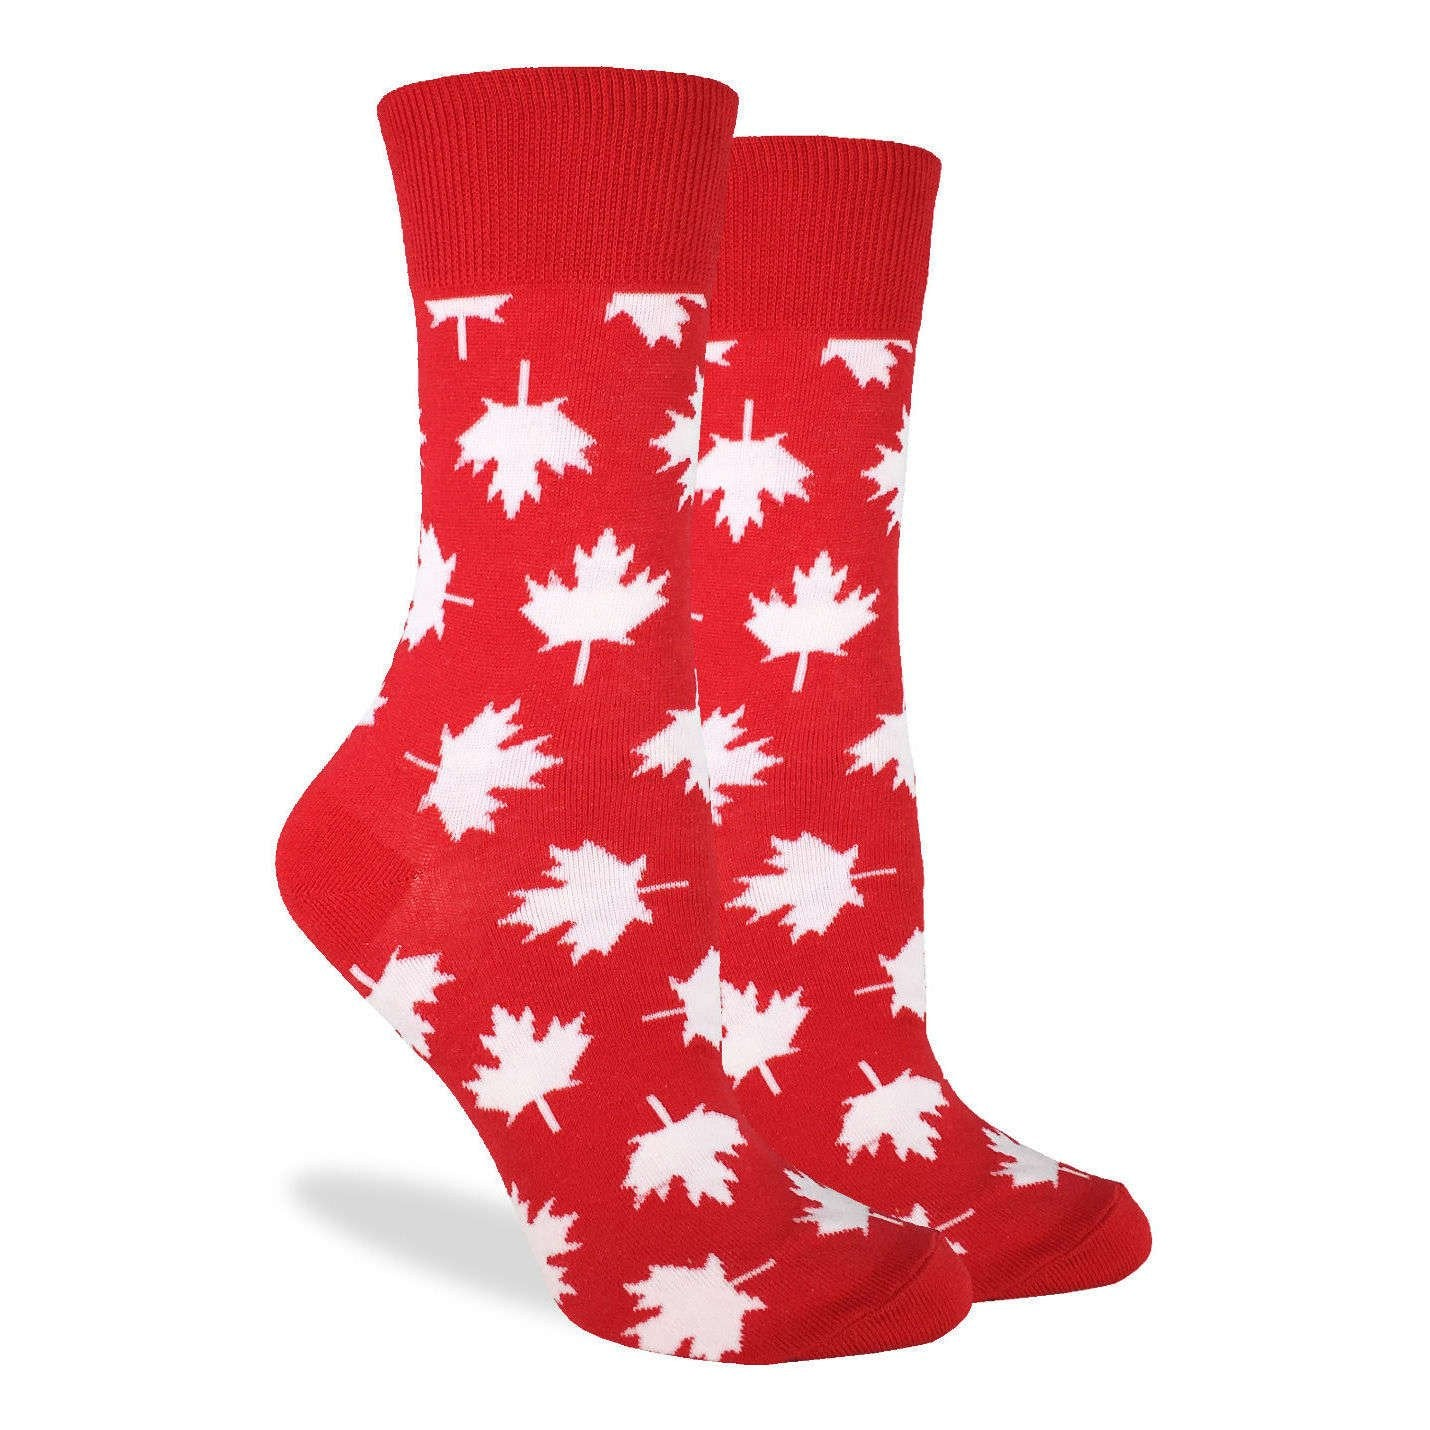 Women's Canada Maple Leaf Socks - Good Luck Sock